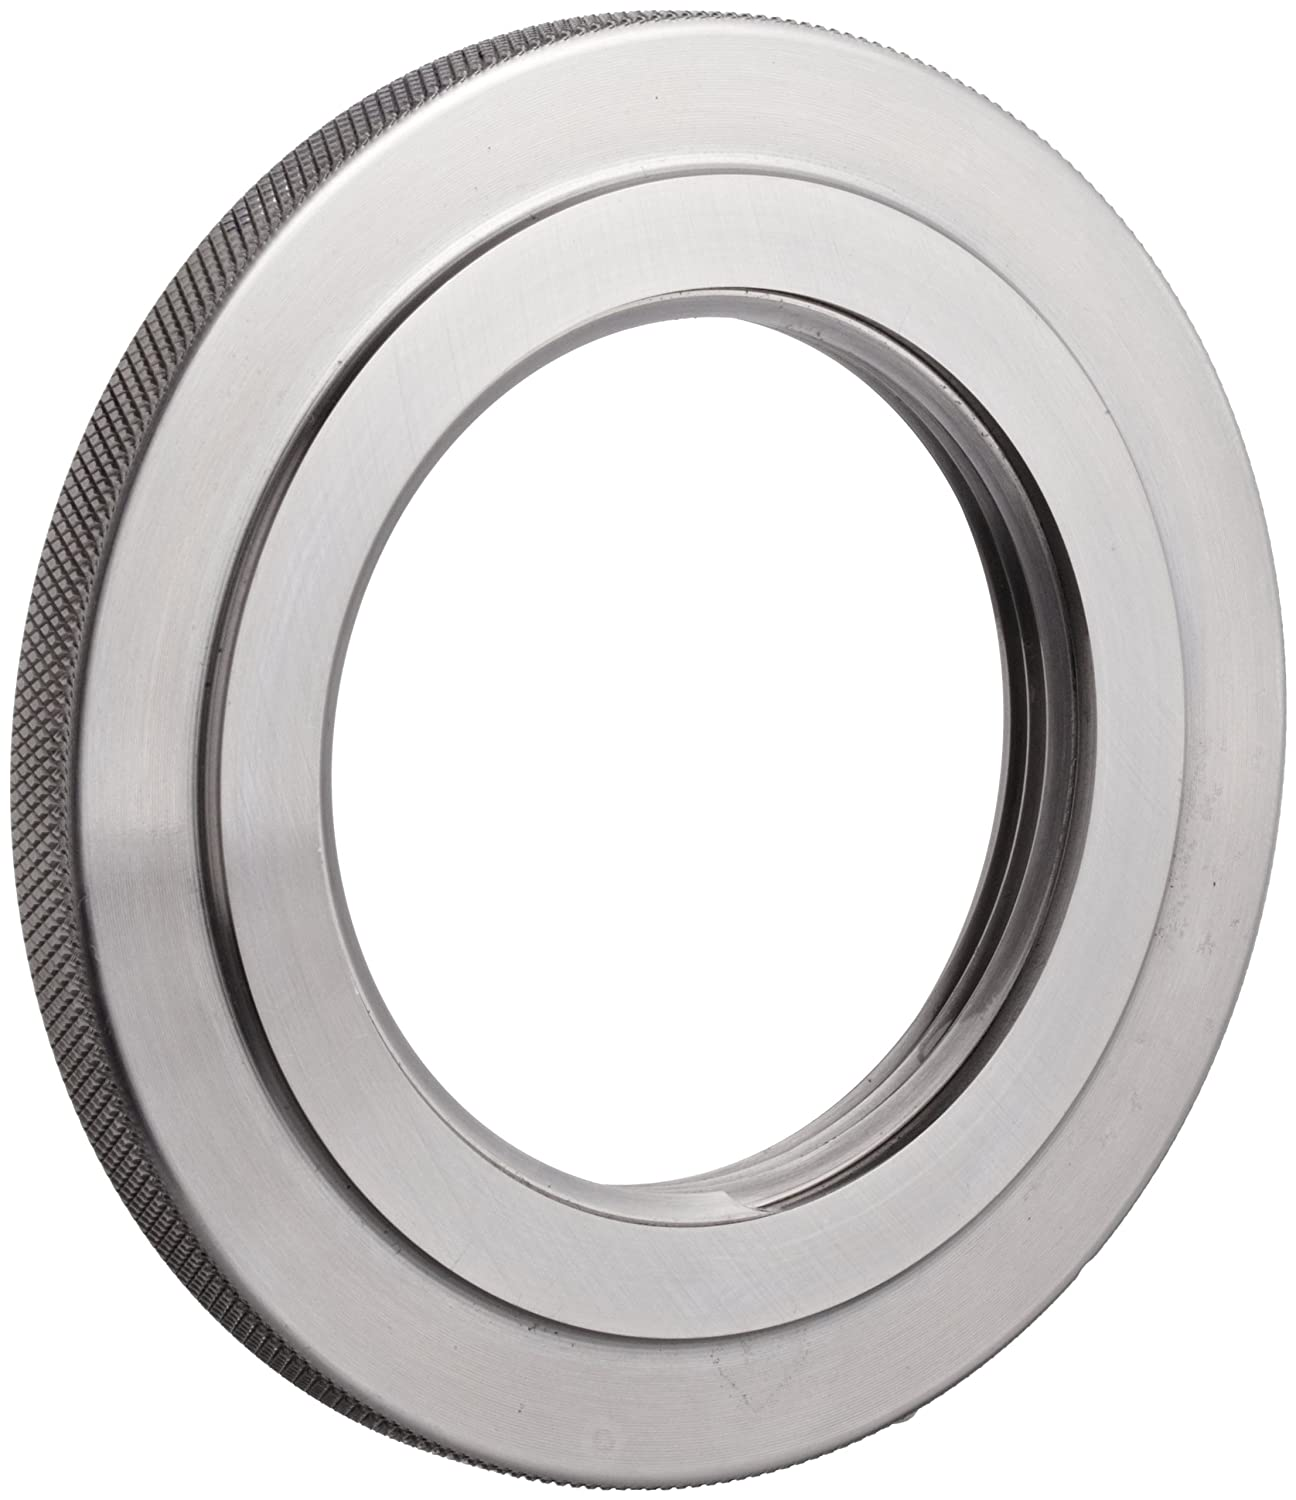 3 1//2 NPT Thread Ring Gage 100/% Checked ship by Fedex Delivery in 4 days